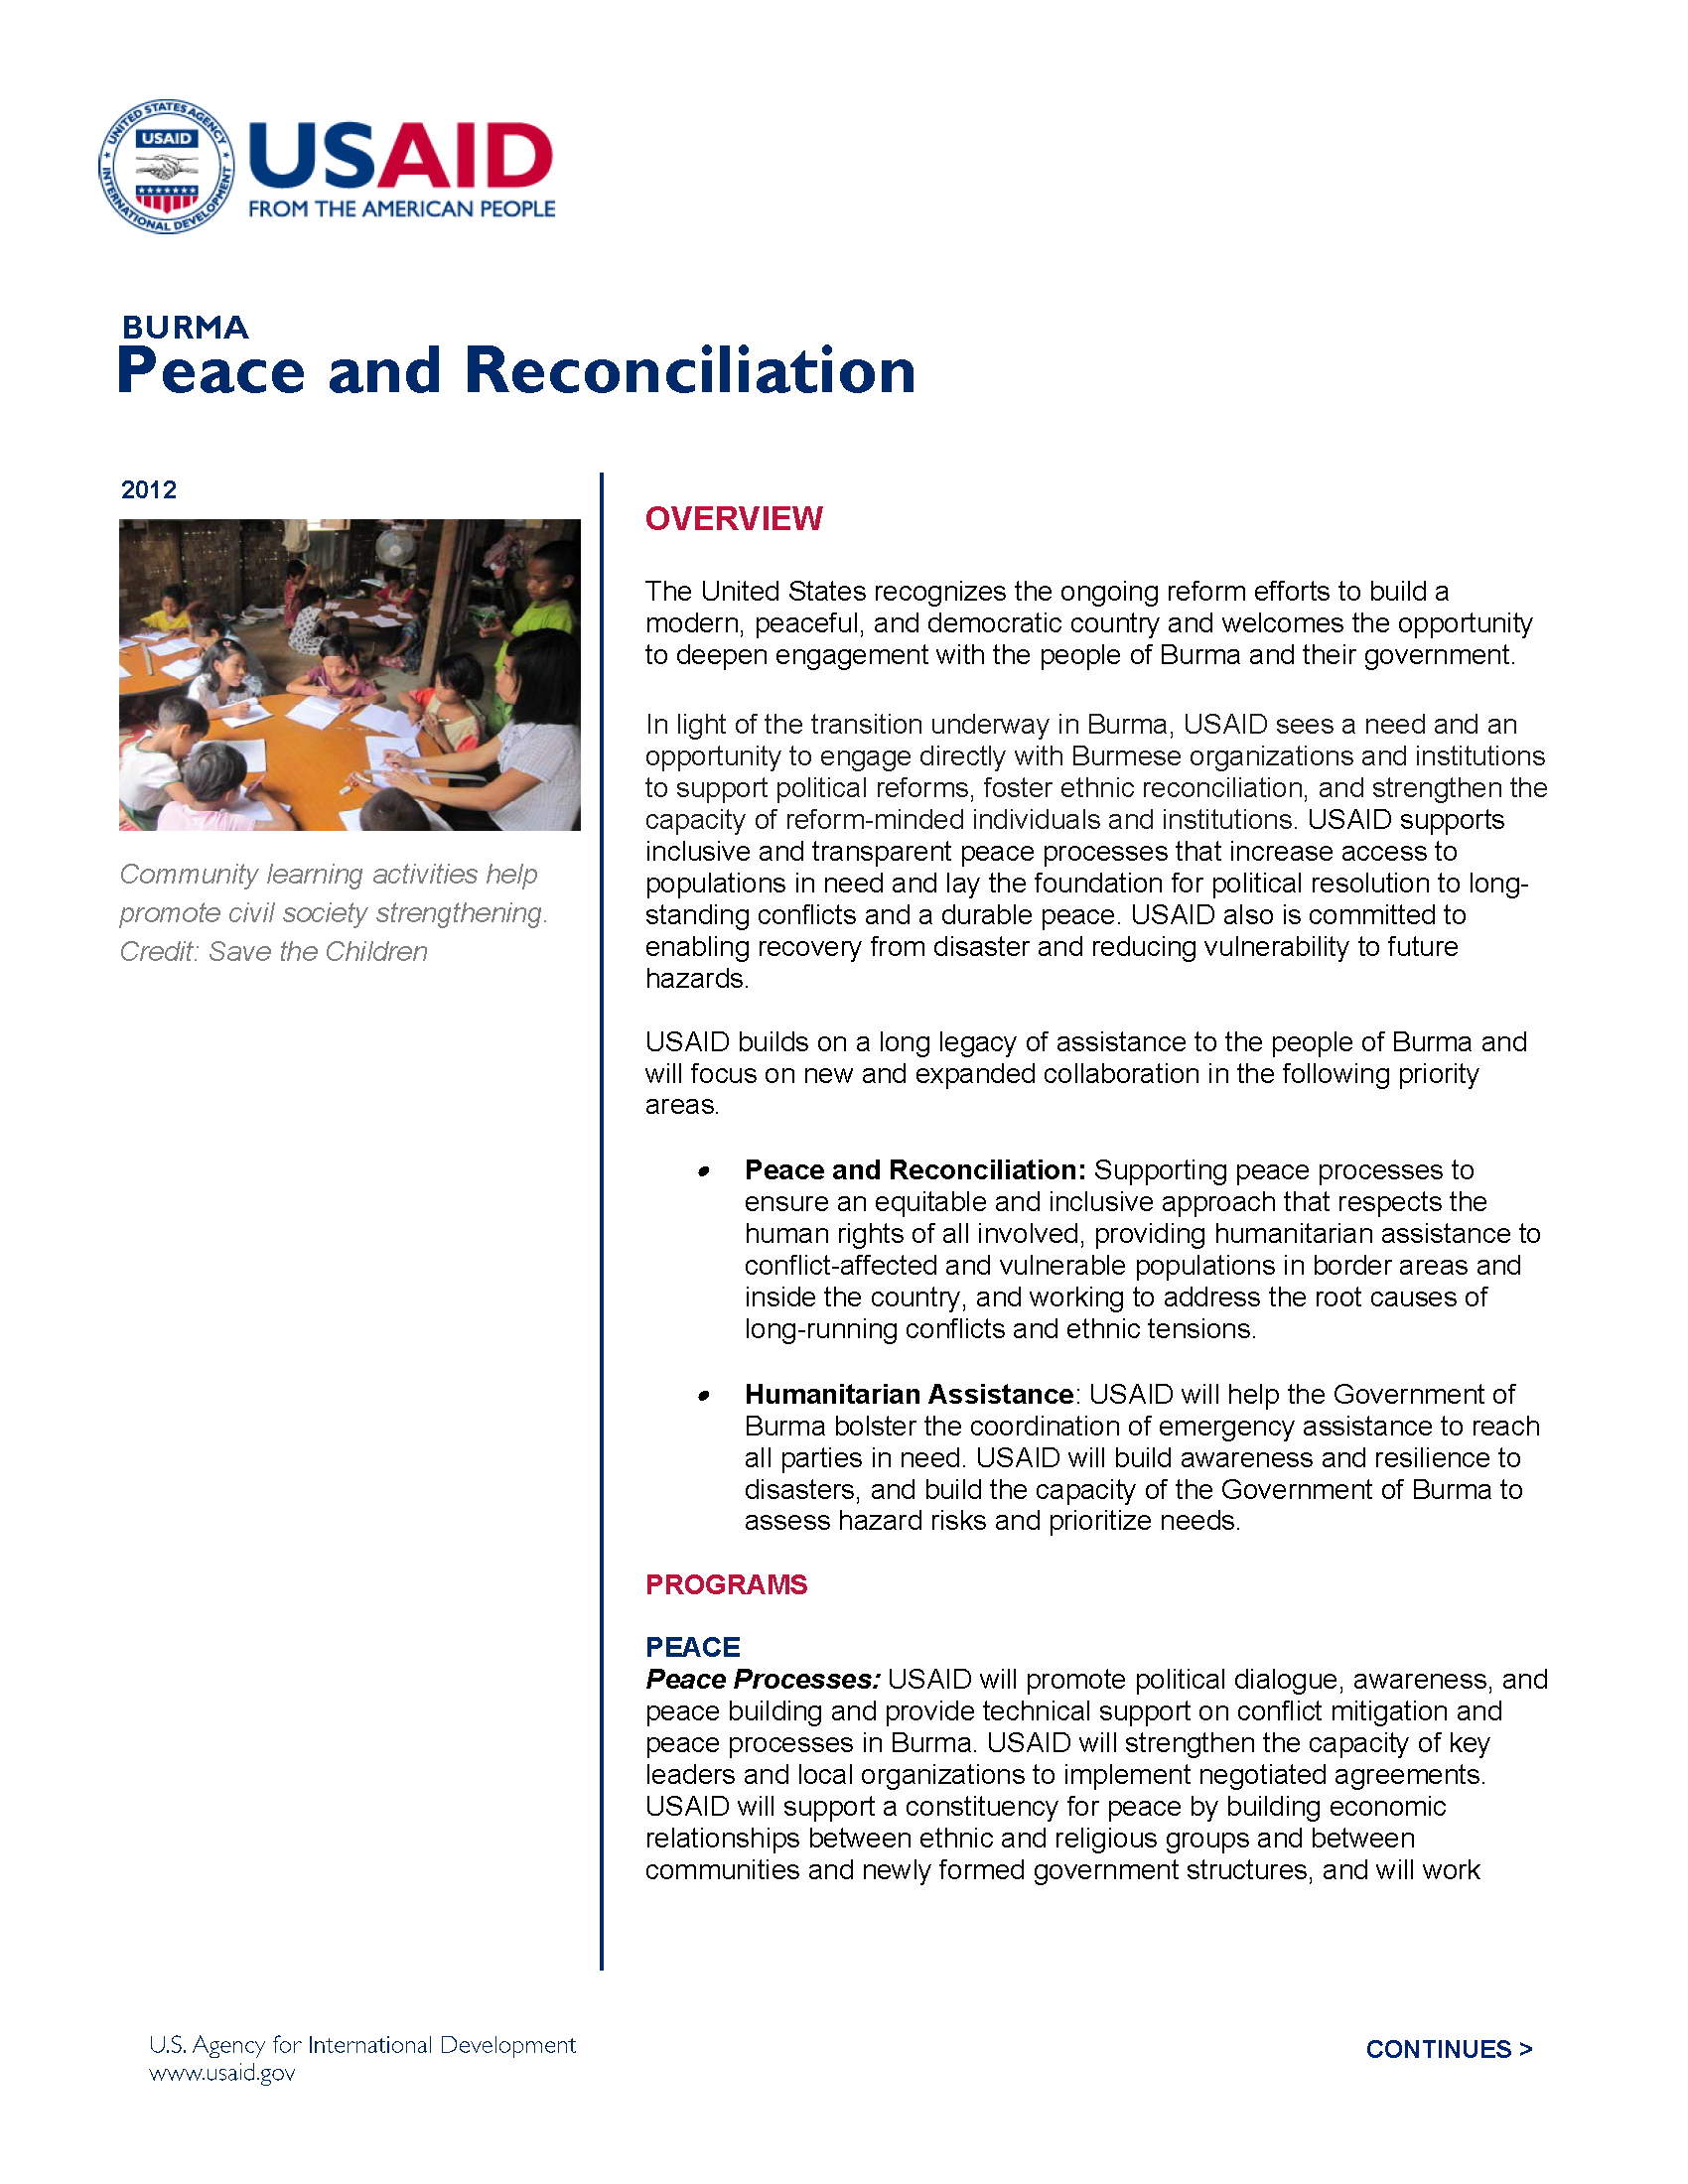 Burma Peace and Reconciliation Fact Sheet